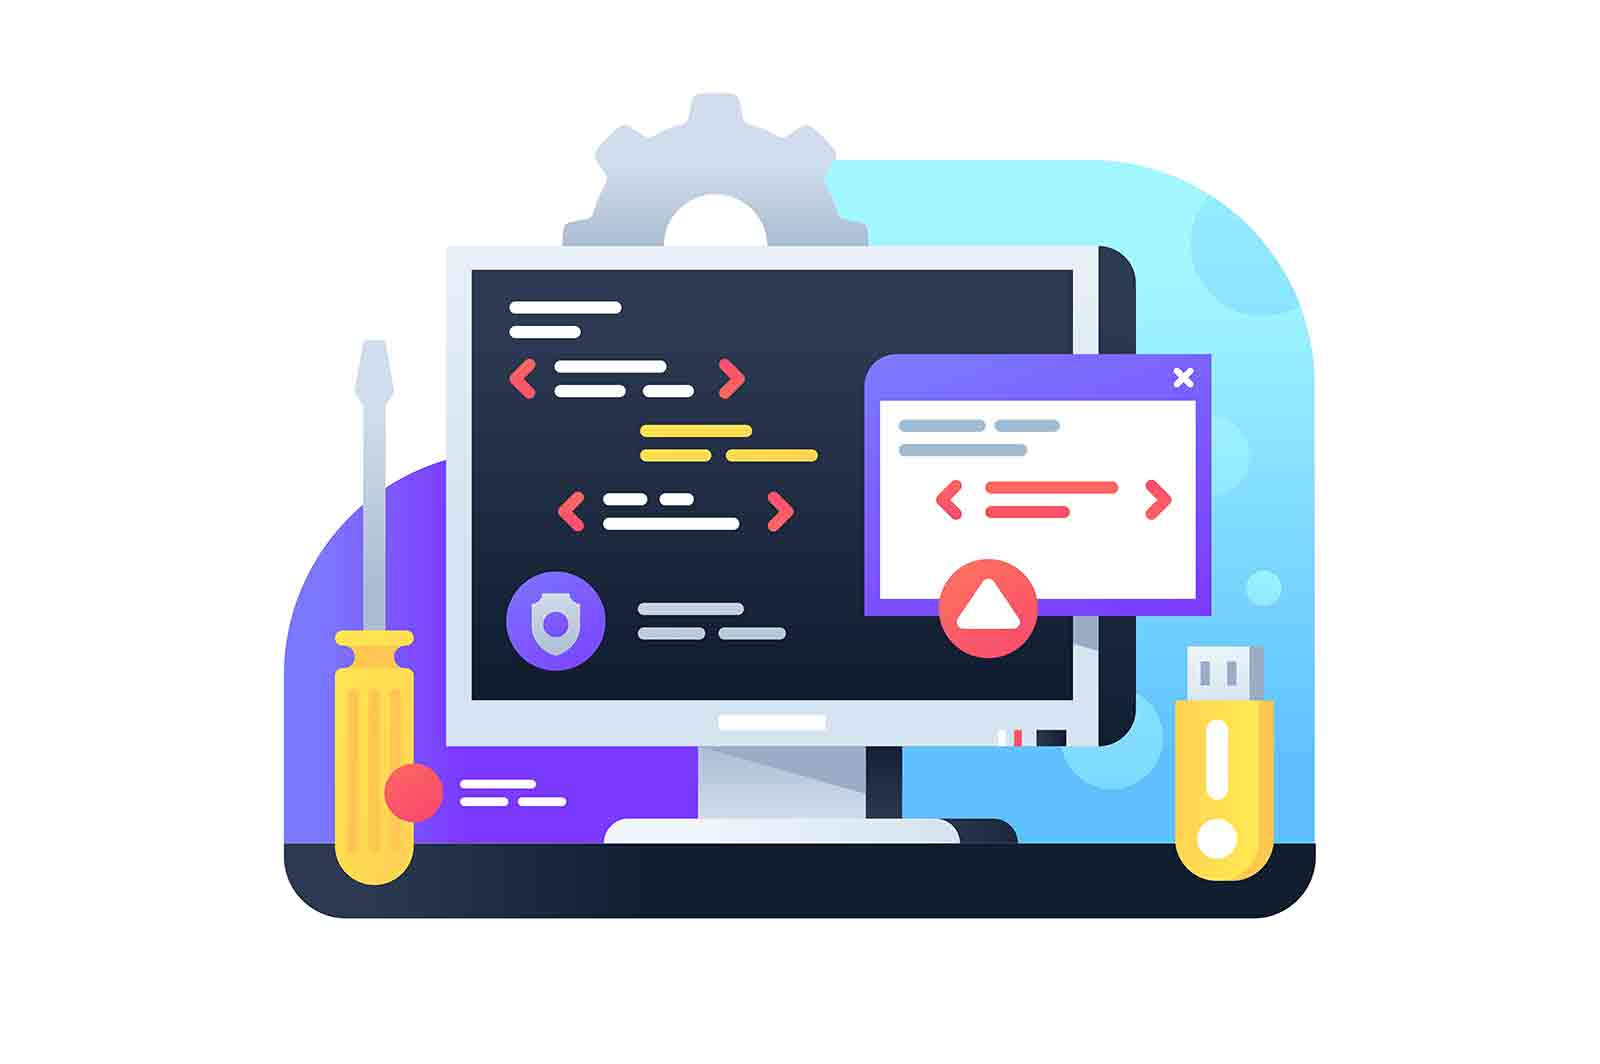 Programming development using pc and IT technology. Isolated icon concept of app using new api for modern business service interface.